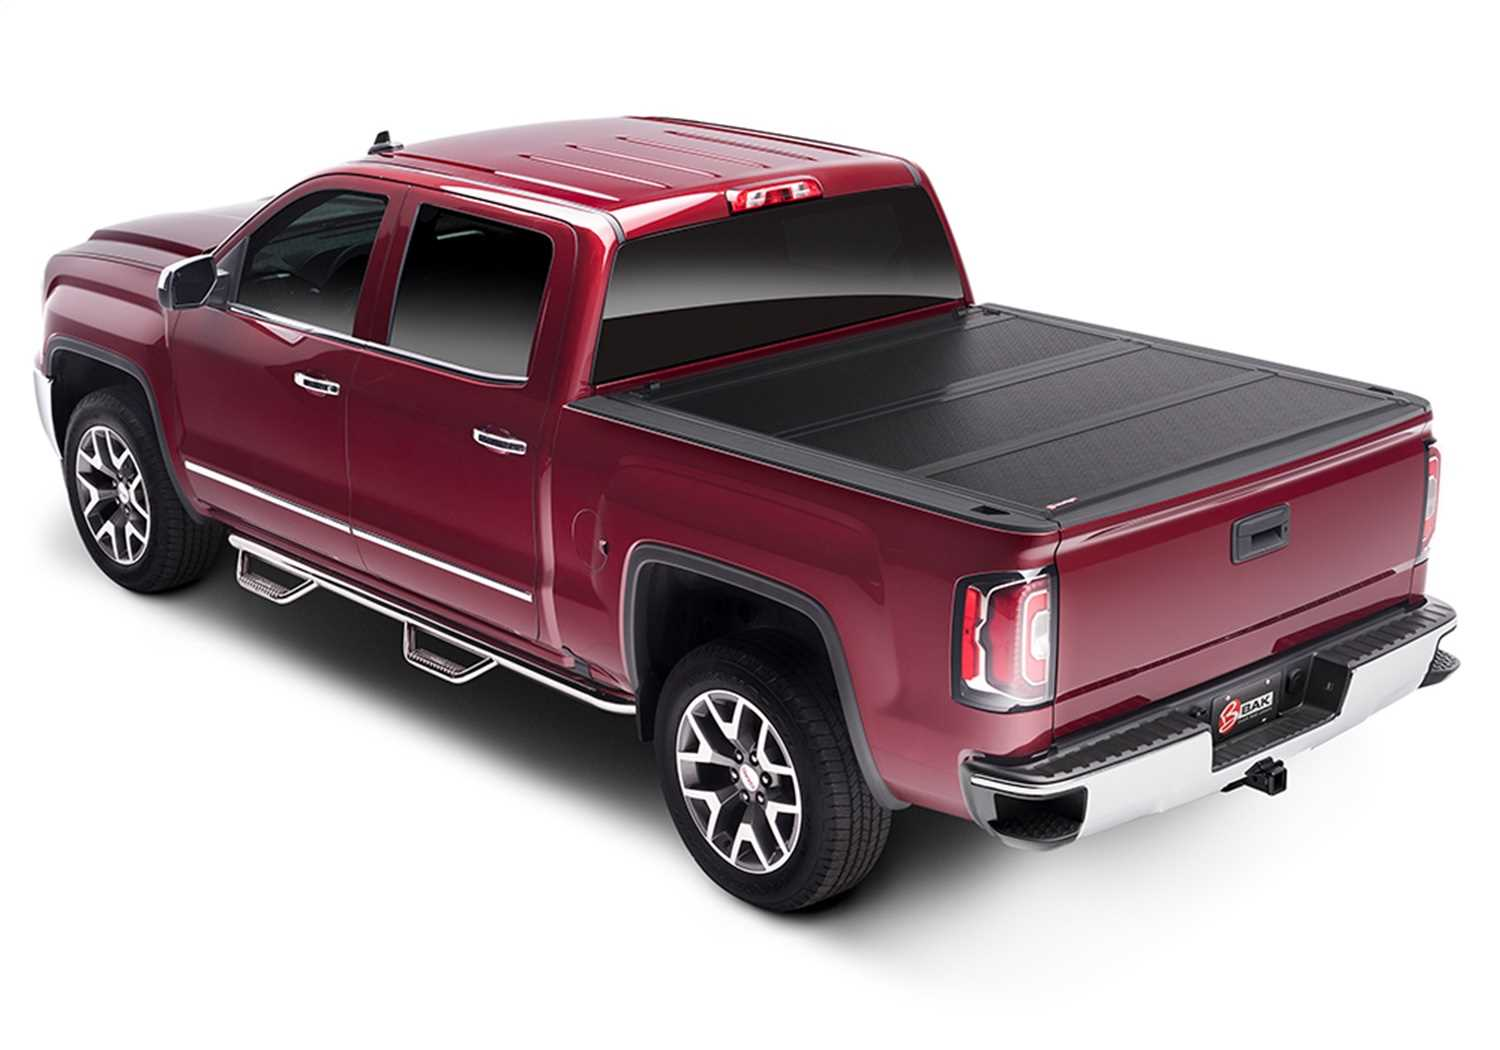 1126133 Bak Industries BAKFlip FiberMax Hard Folding Truck Bed Cover